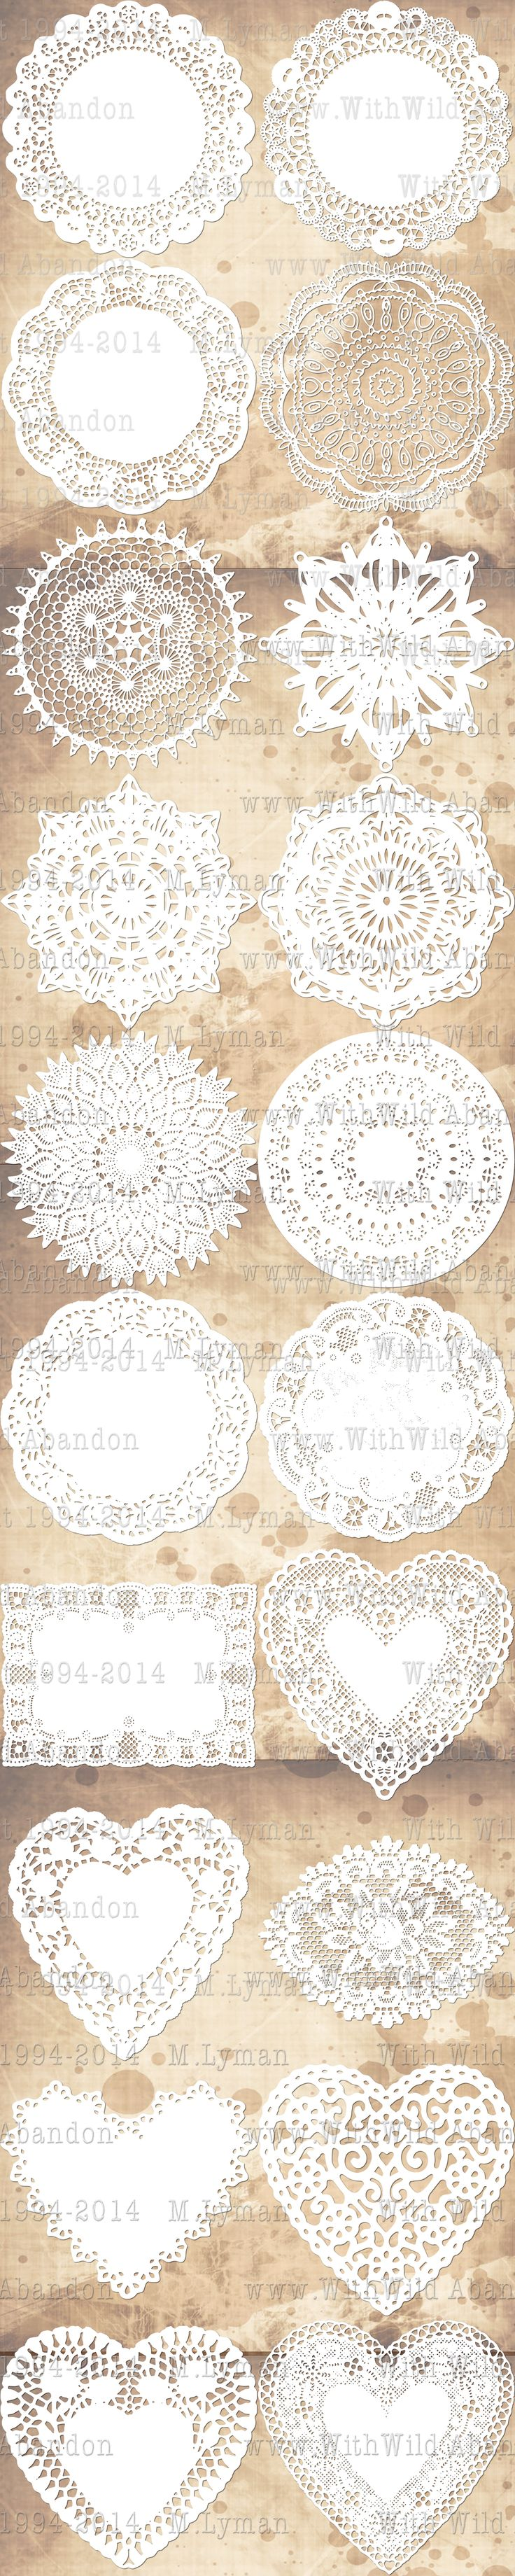 digital stamp, clipart, silhouettes, ai ,svg, eps,doily, wedding, cameo silhouette, cricket explore, lace, png